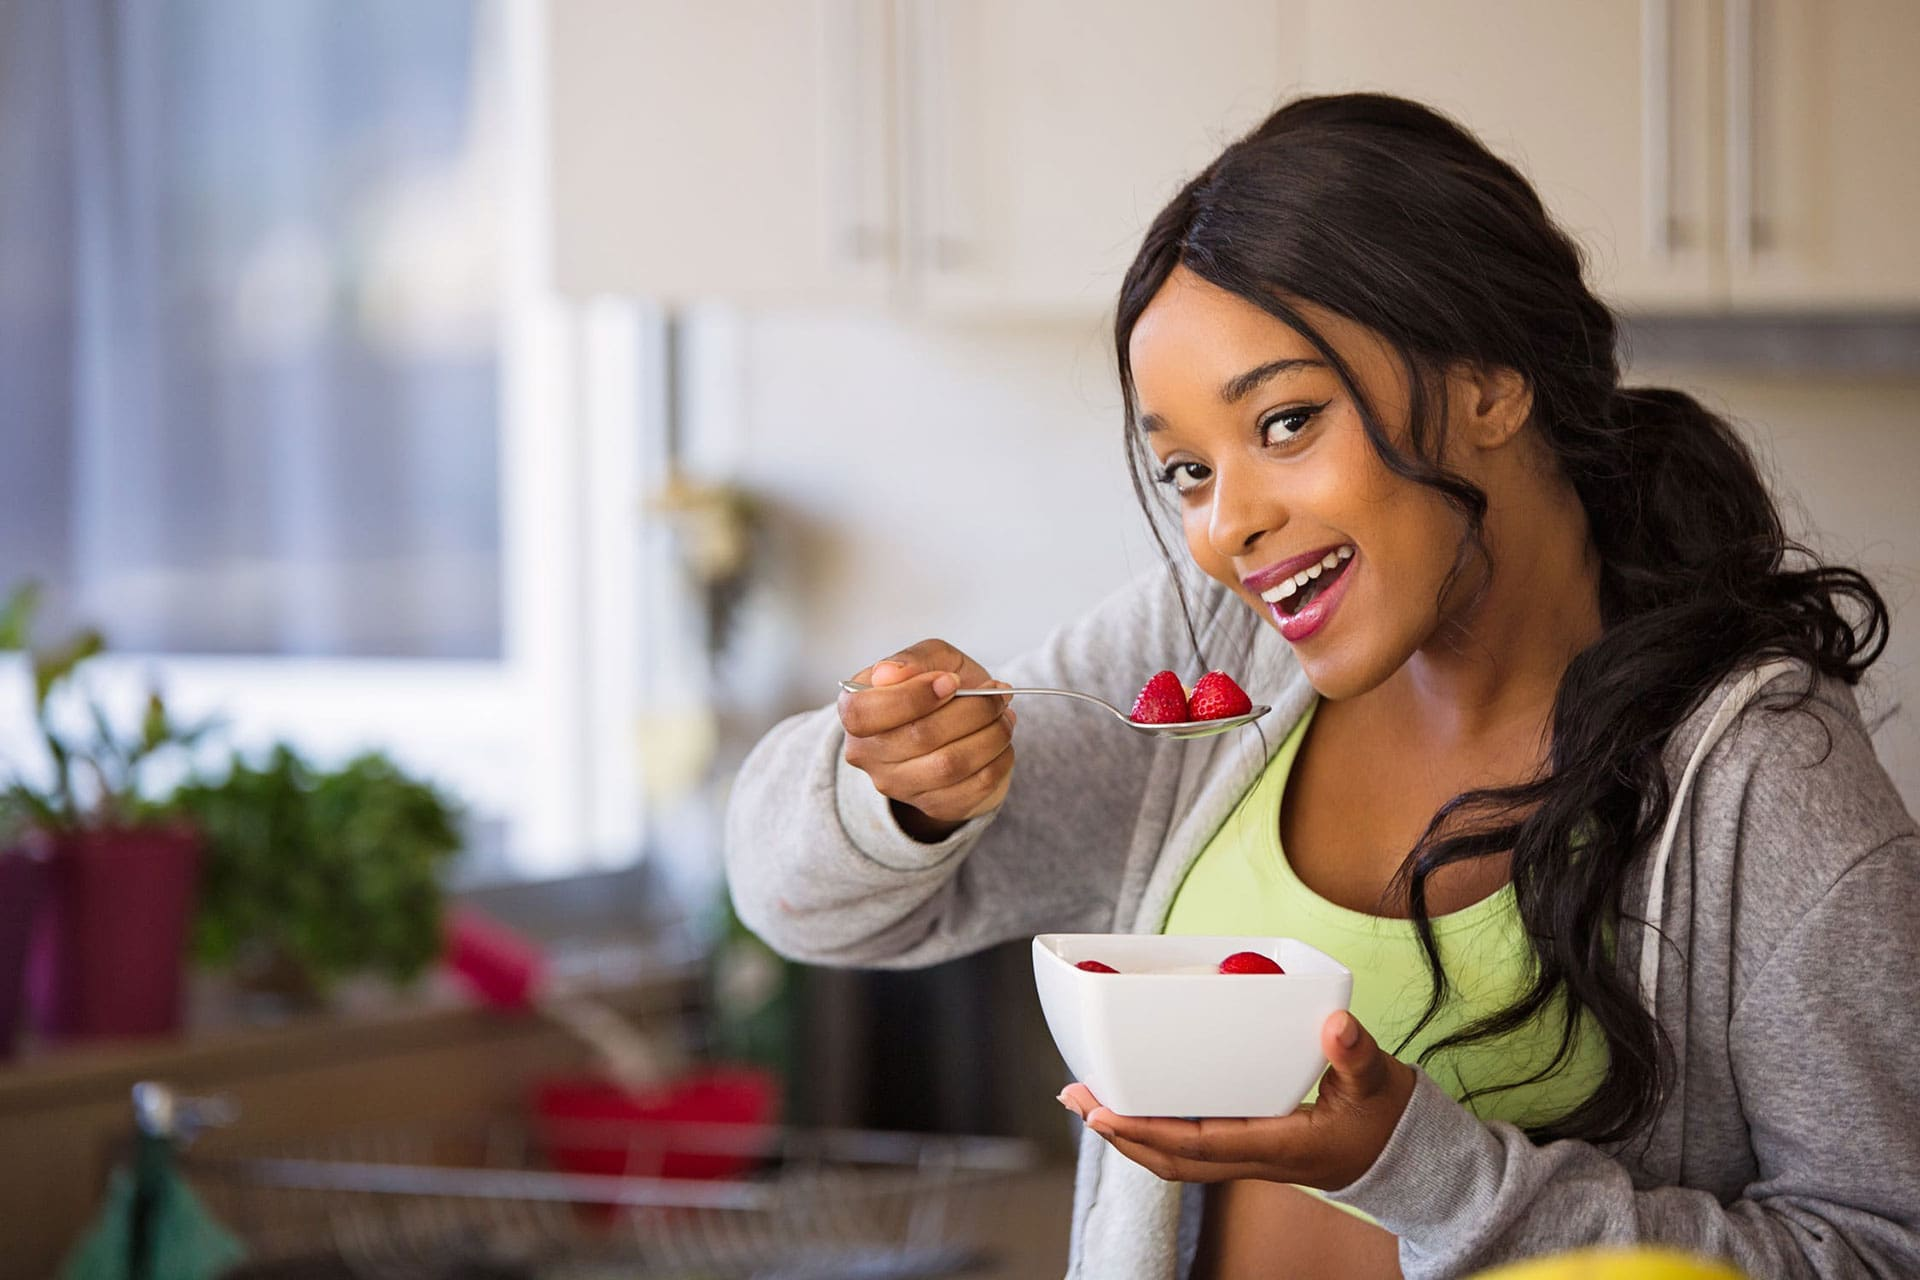 woman eating strawberries out of a bowl